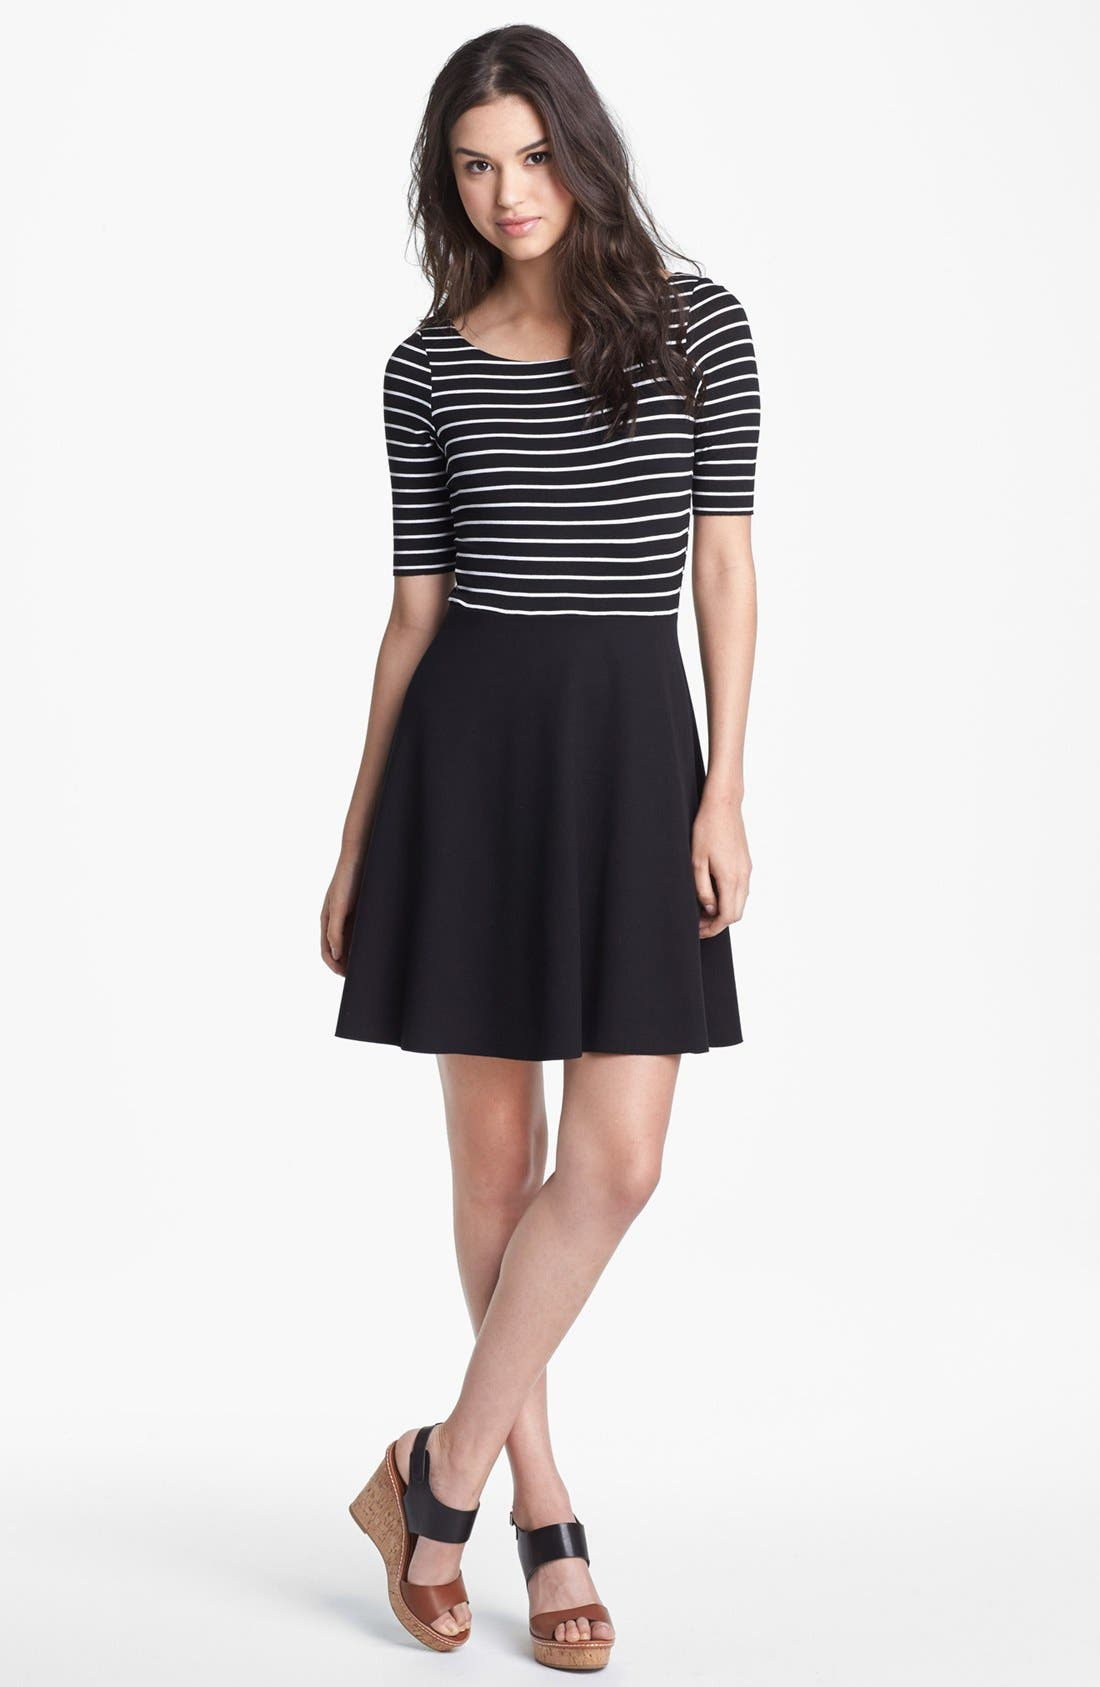 B44 DRESSED BY BAILEY 44 'Brochette' Dress, Main, color, 001